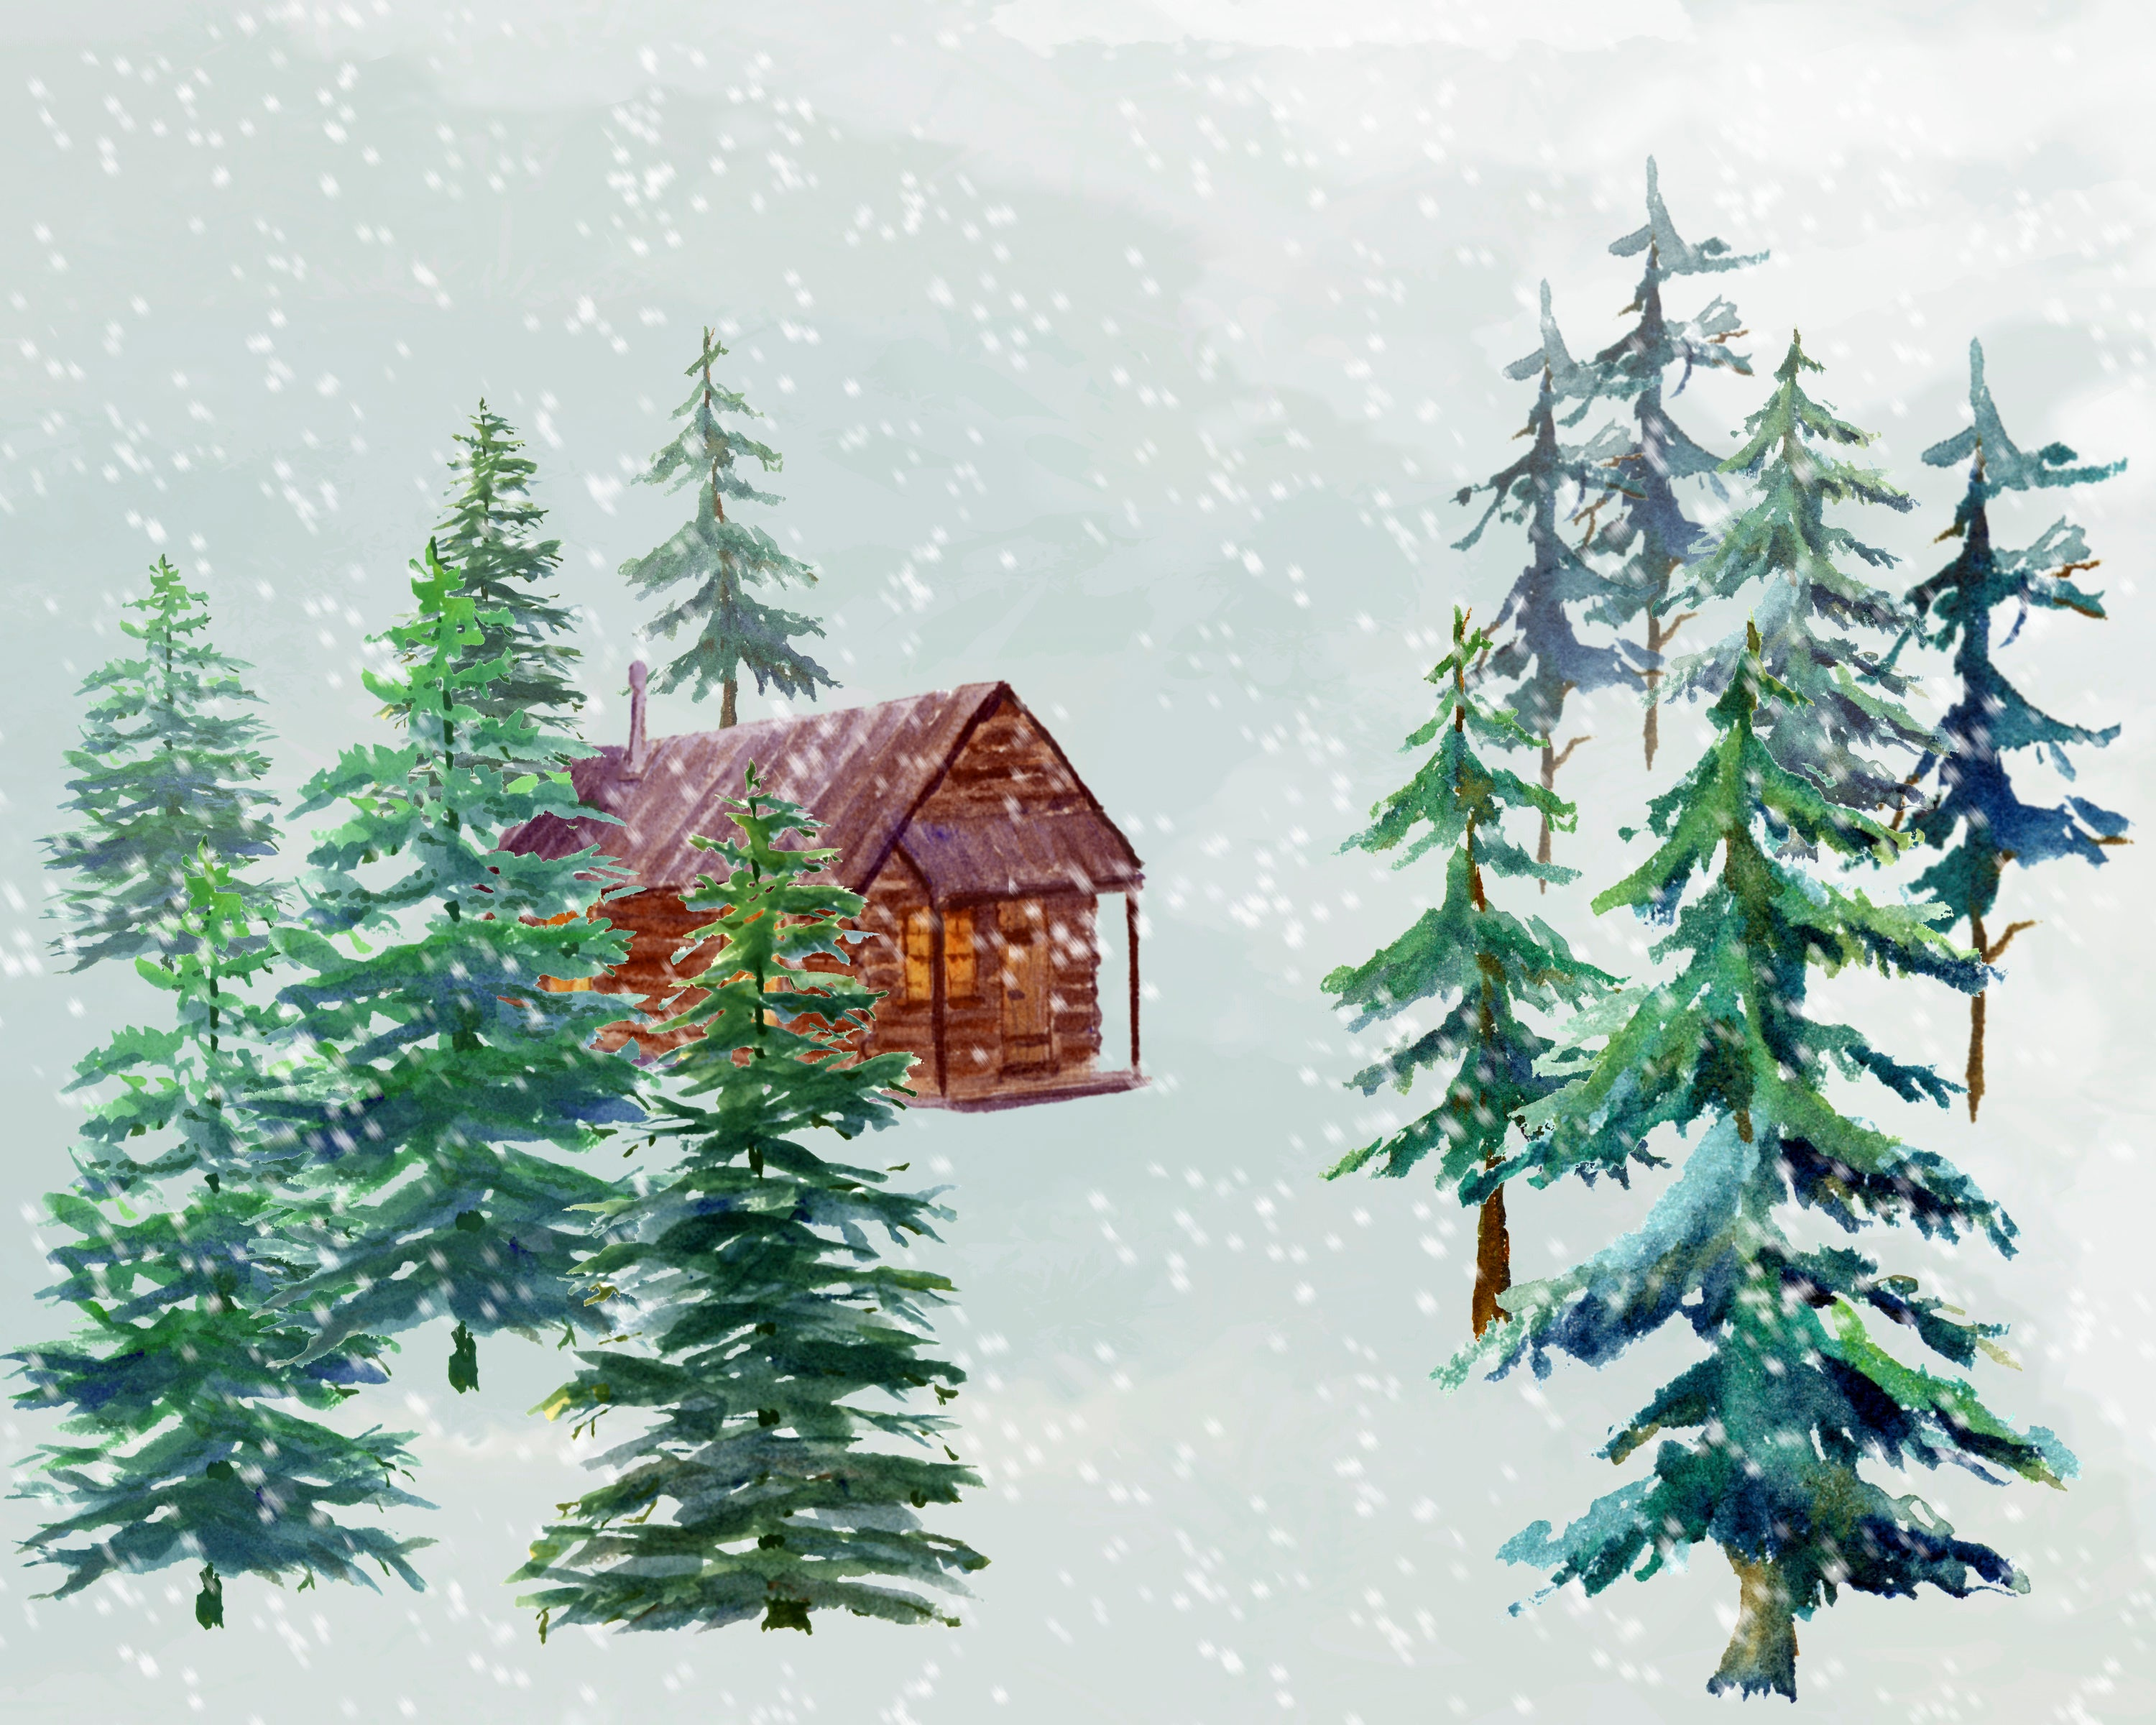 winter woods watercolor clip pine trees snow log cabin watercolor background winter woods watercolor clip pine trees snow log cabin watercolor background